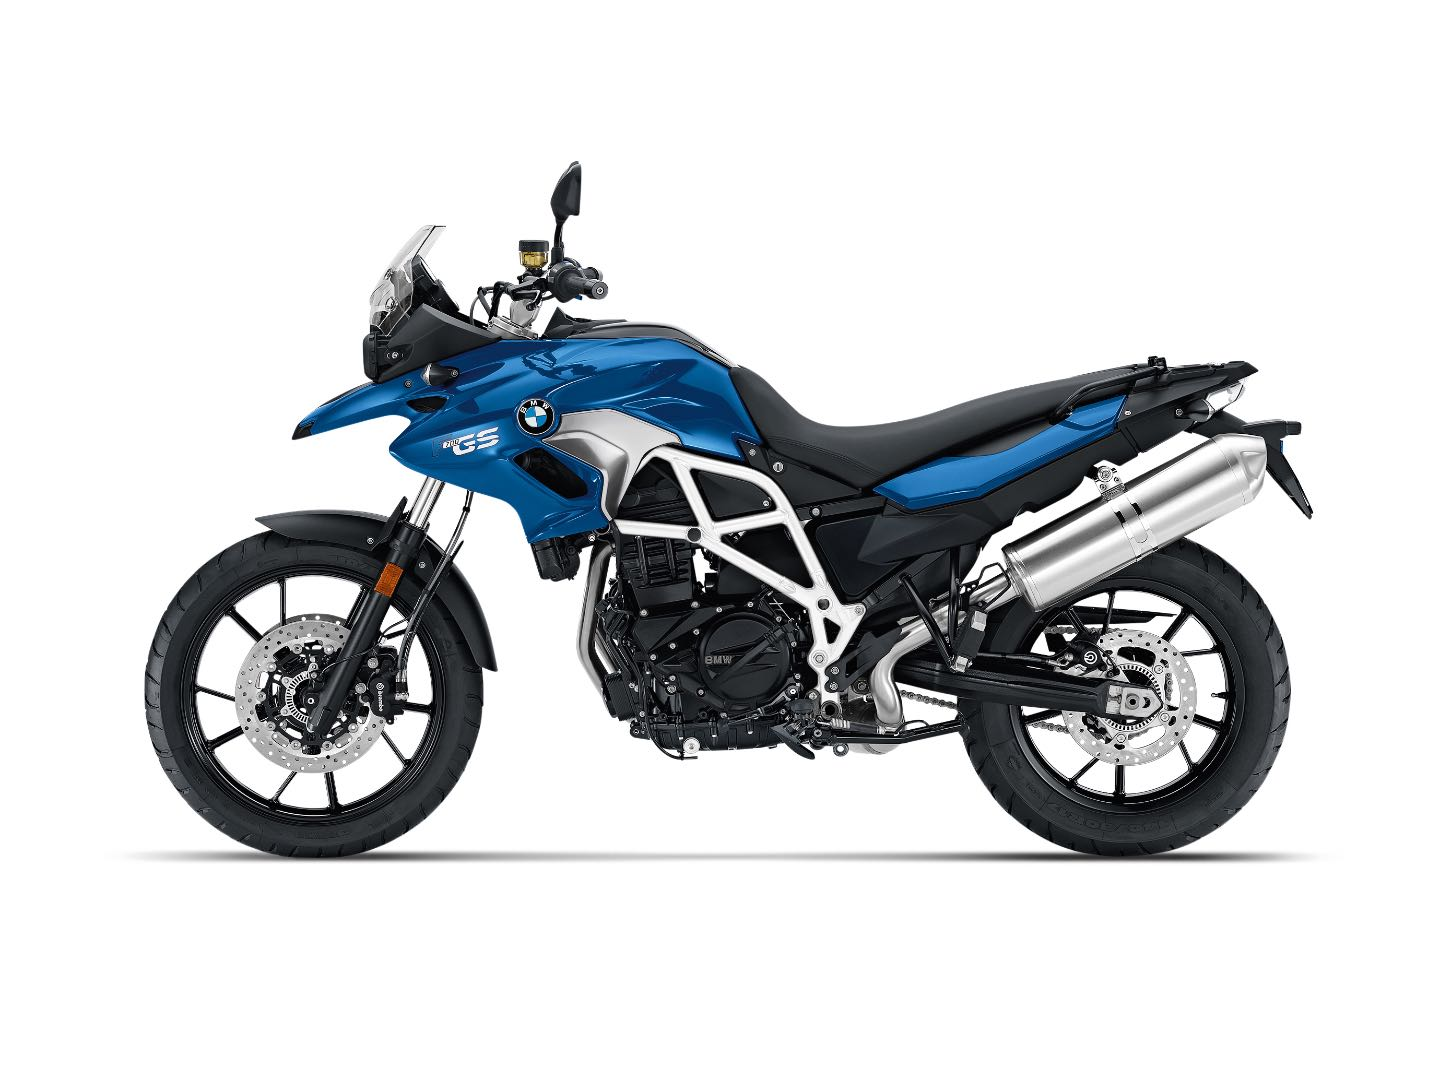 2018 BMW F 700 GS for sale price